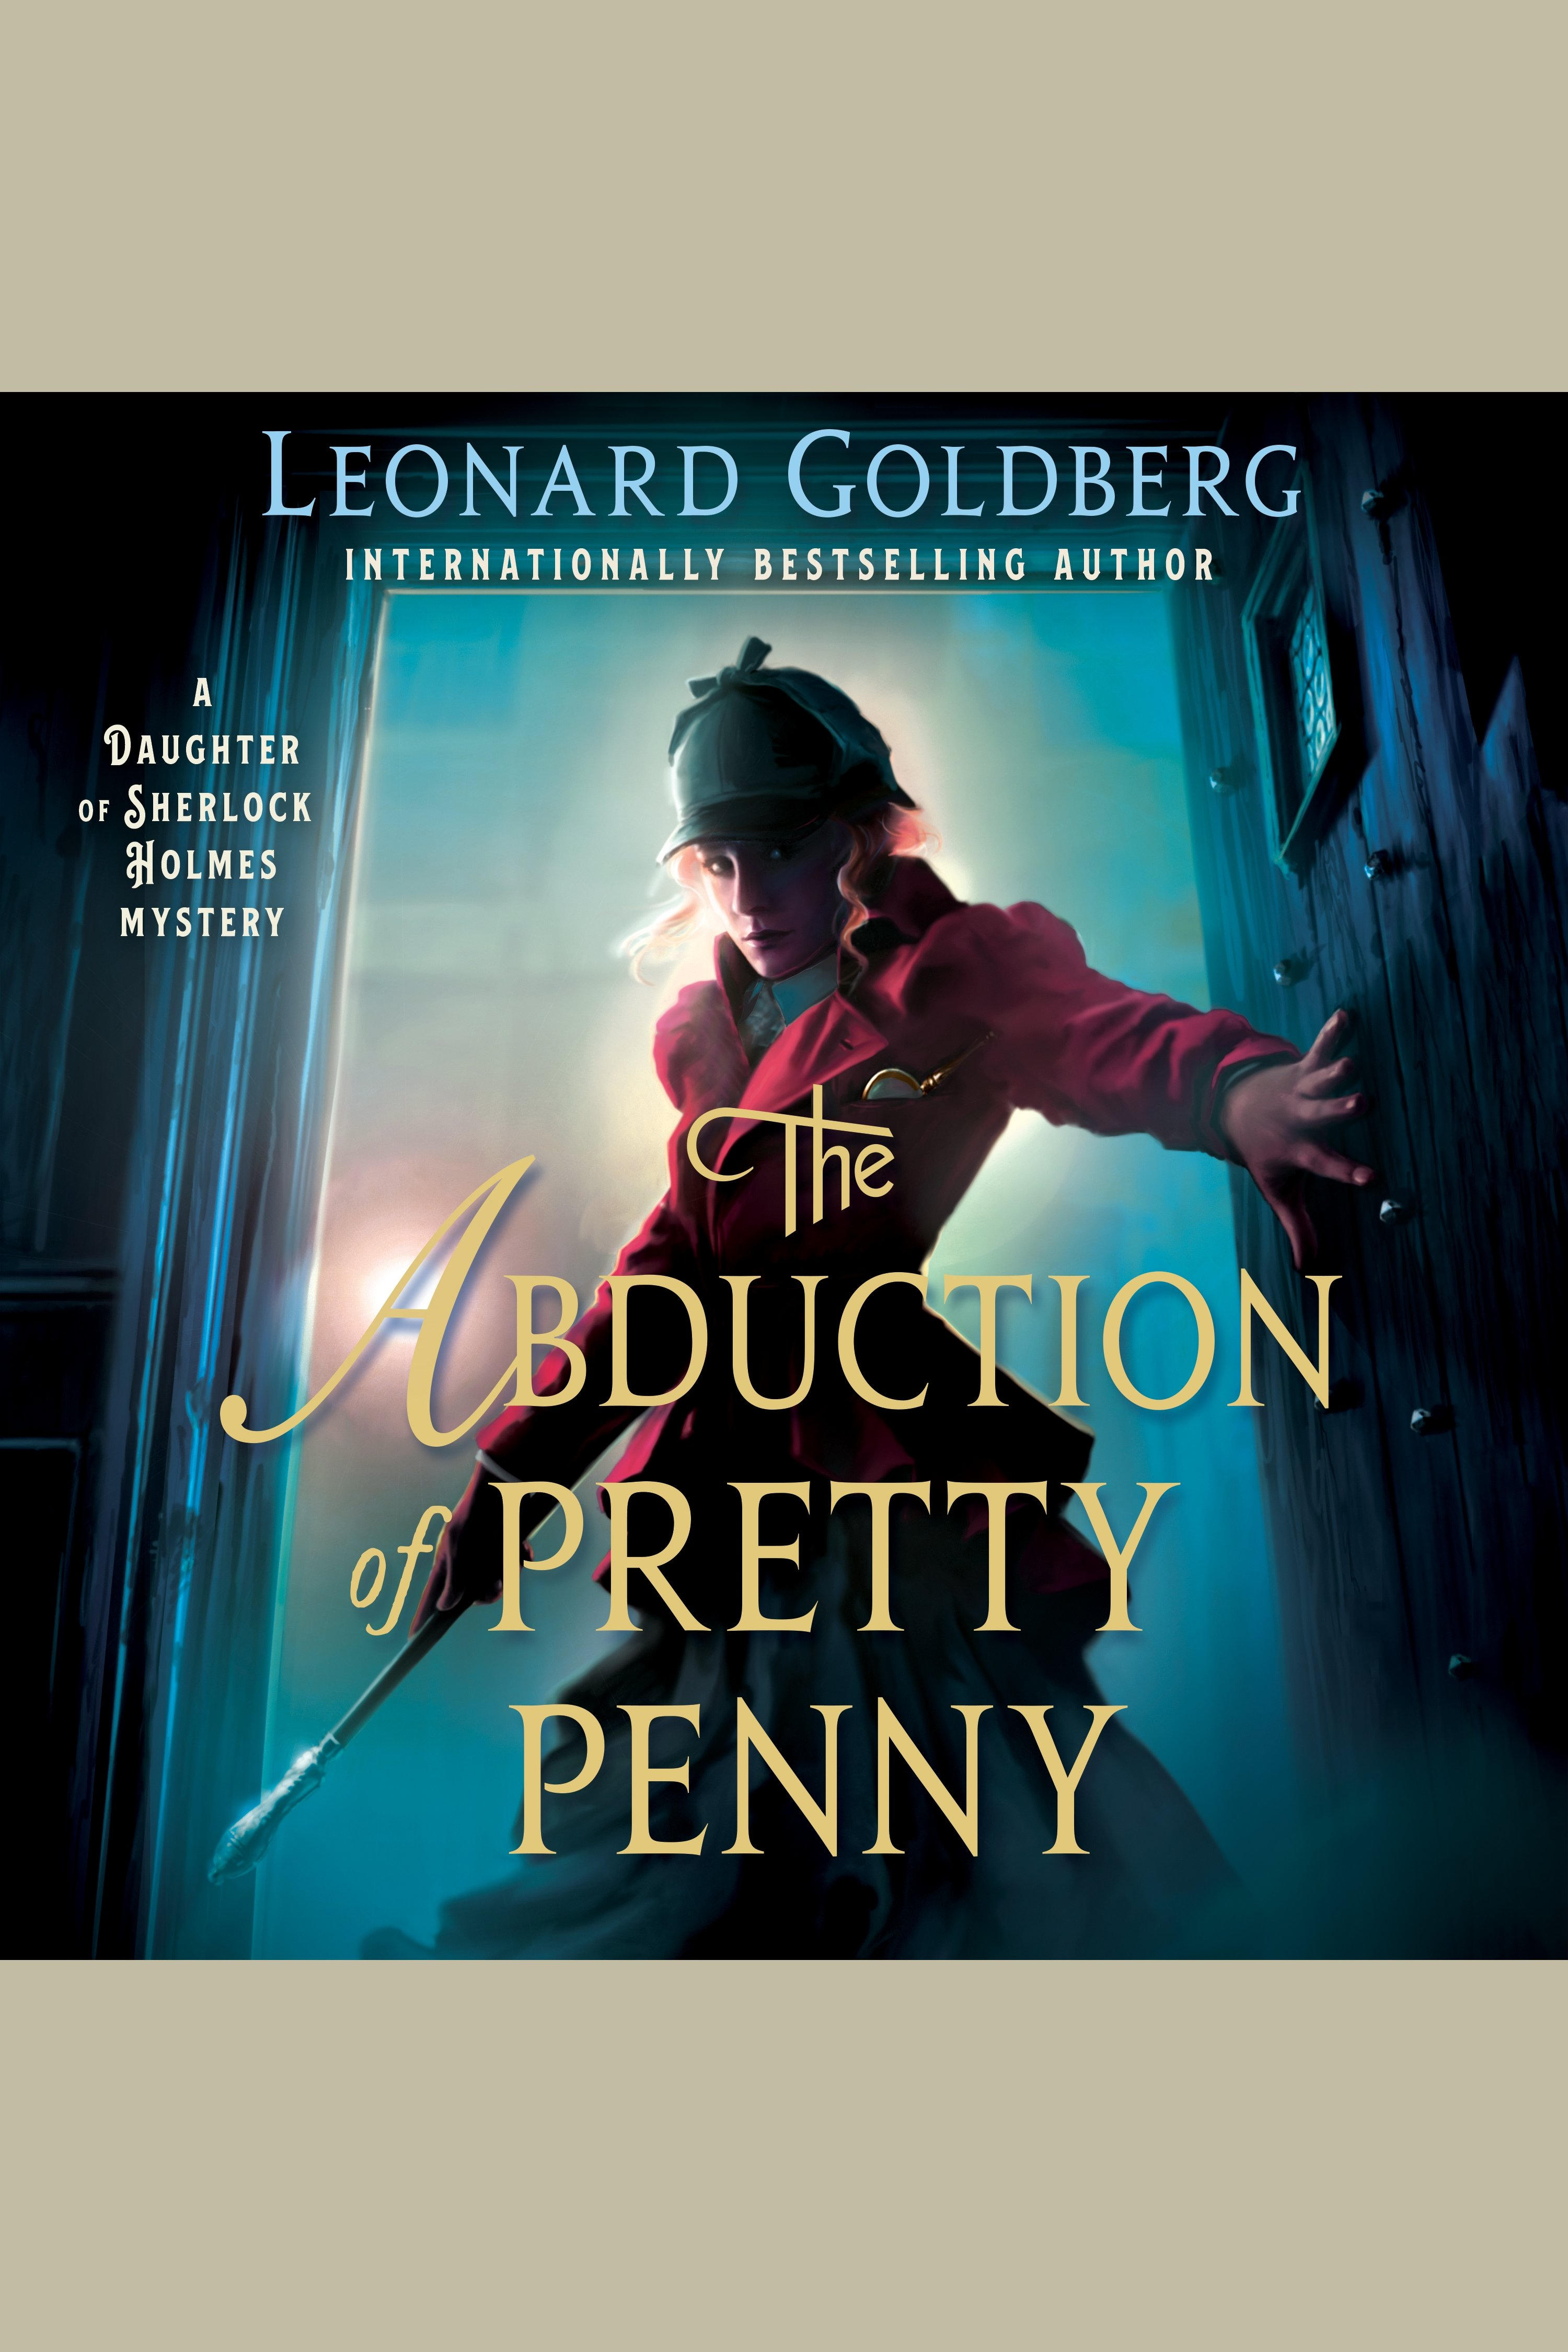 Abduction of Pretty Penny, The A Daughter of Sherlock Holmes Mystery